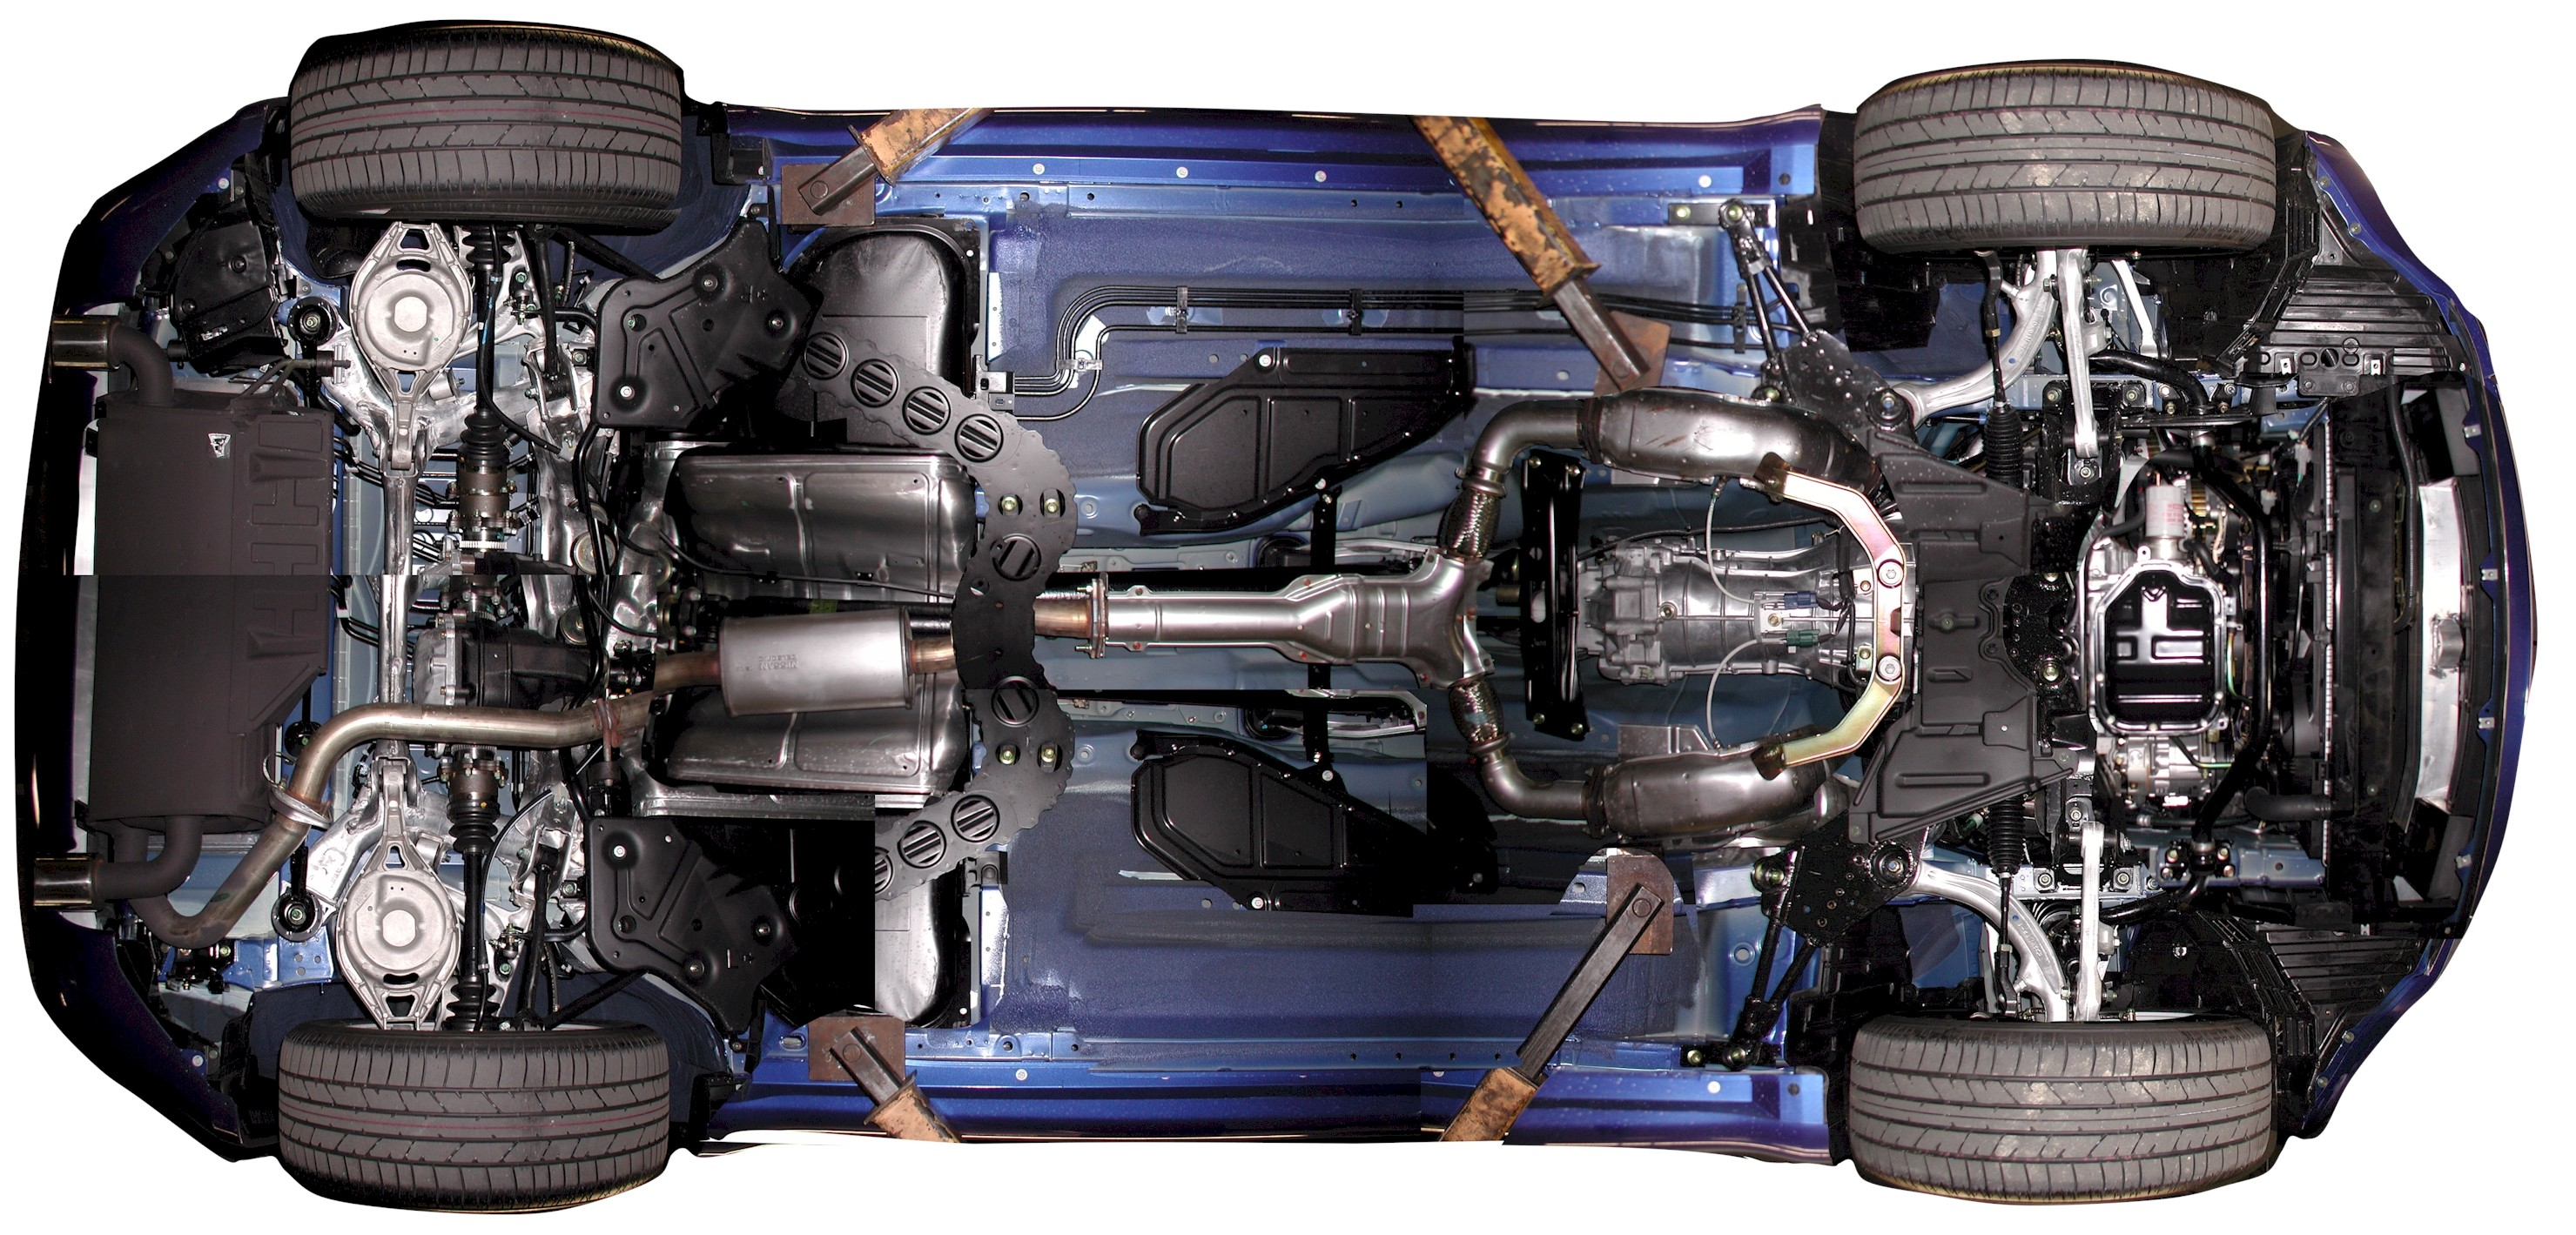 Car Underside Diagram when You Go Over A Big Bump and Hit the Bottom Of Your Car Hard Of Car Underside Diagram